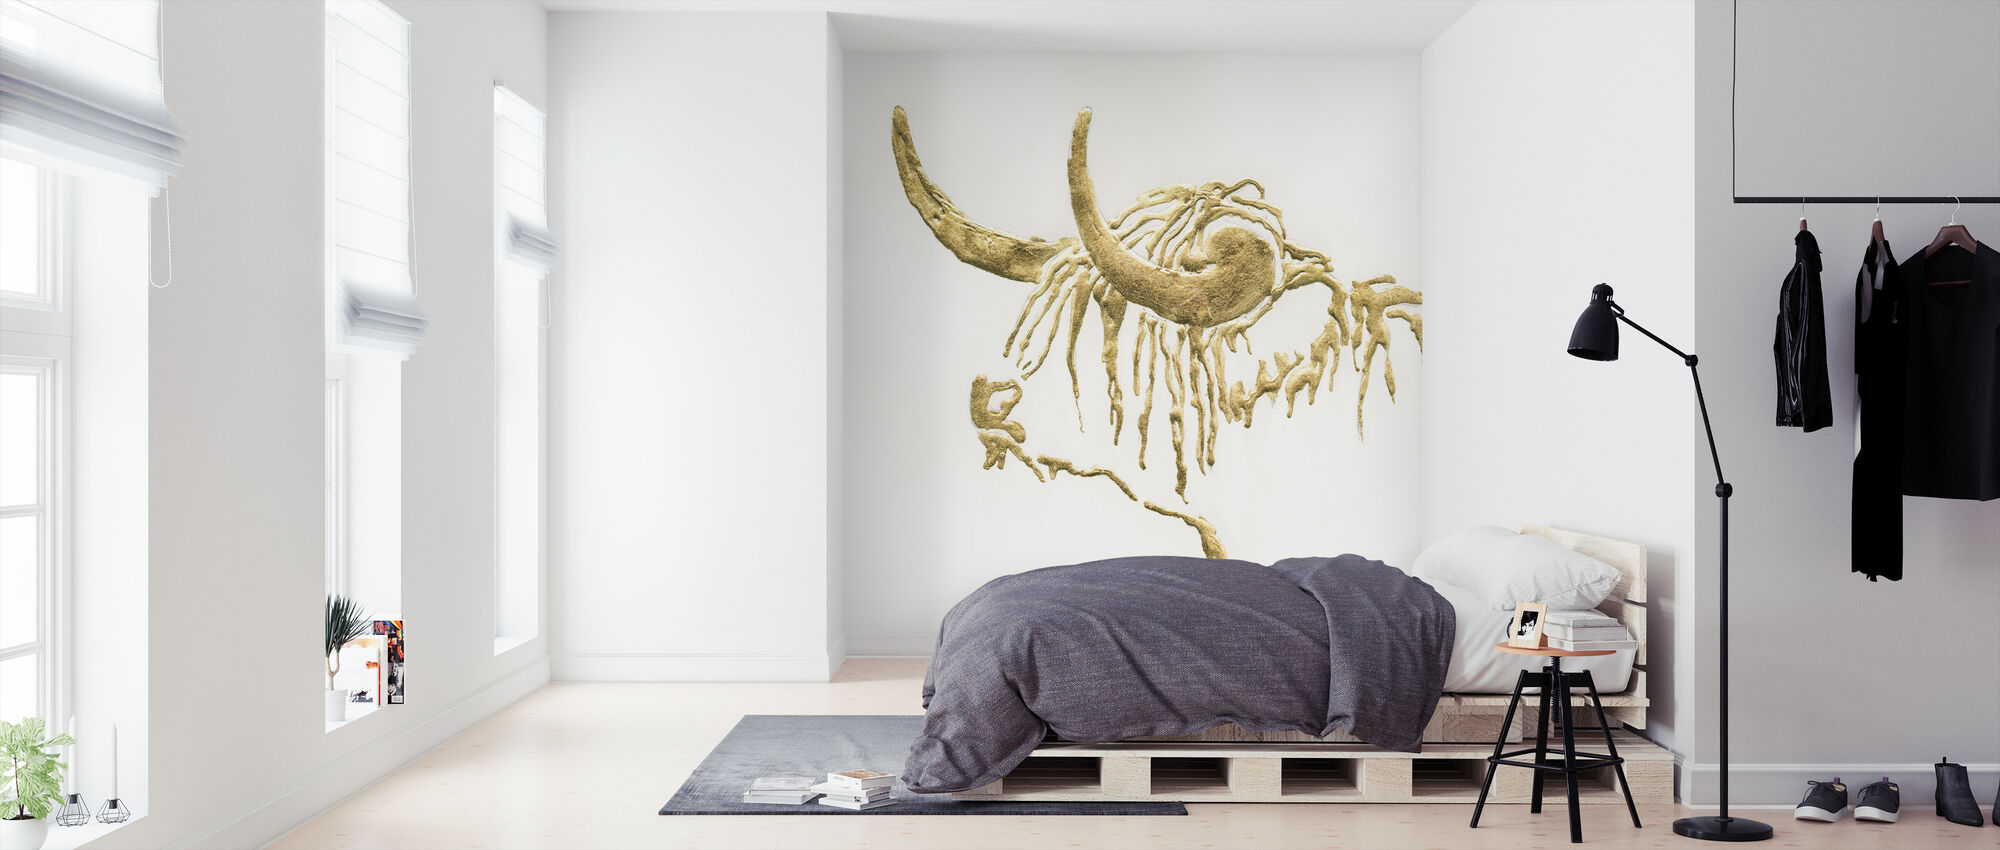 Gilded Highlander - Wallpaper - Bedroom